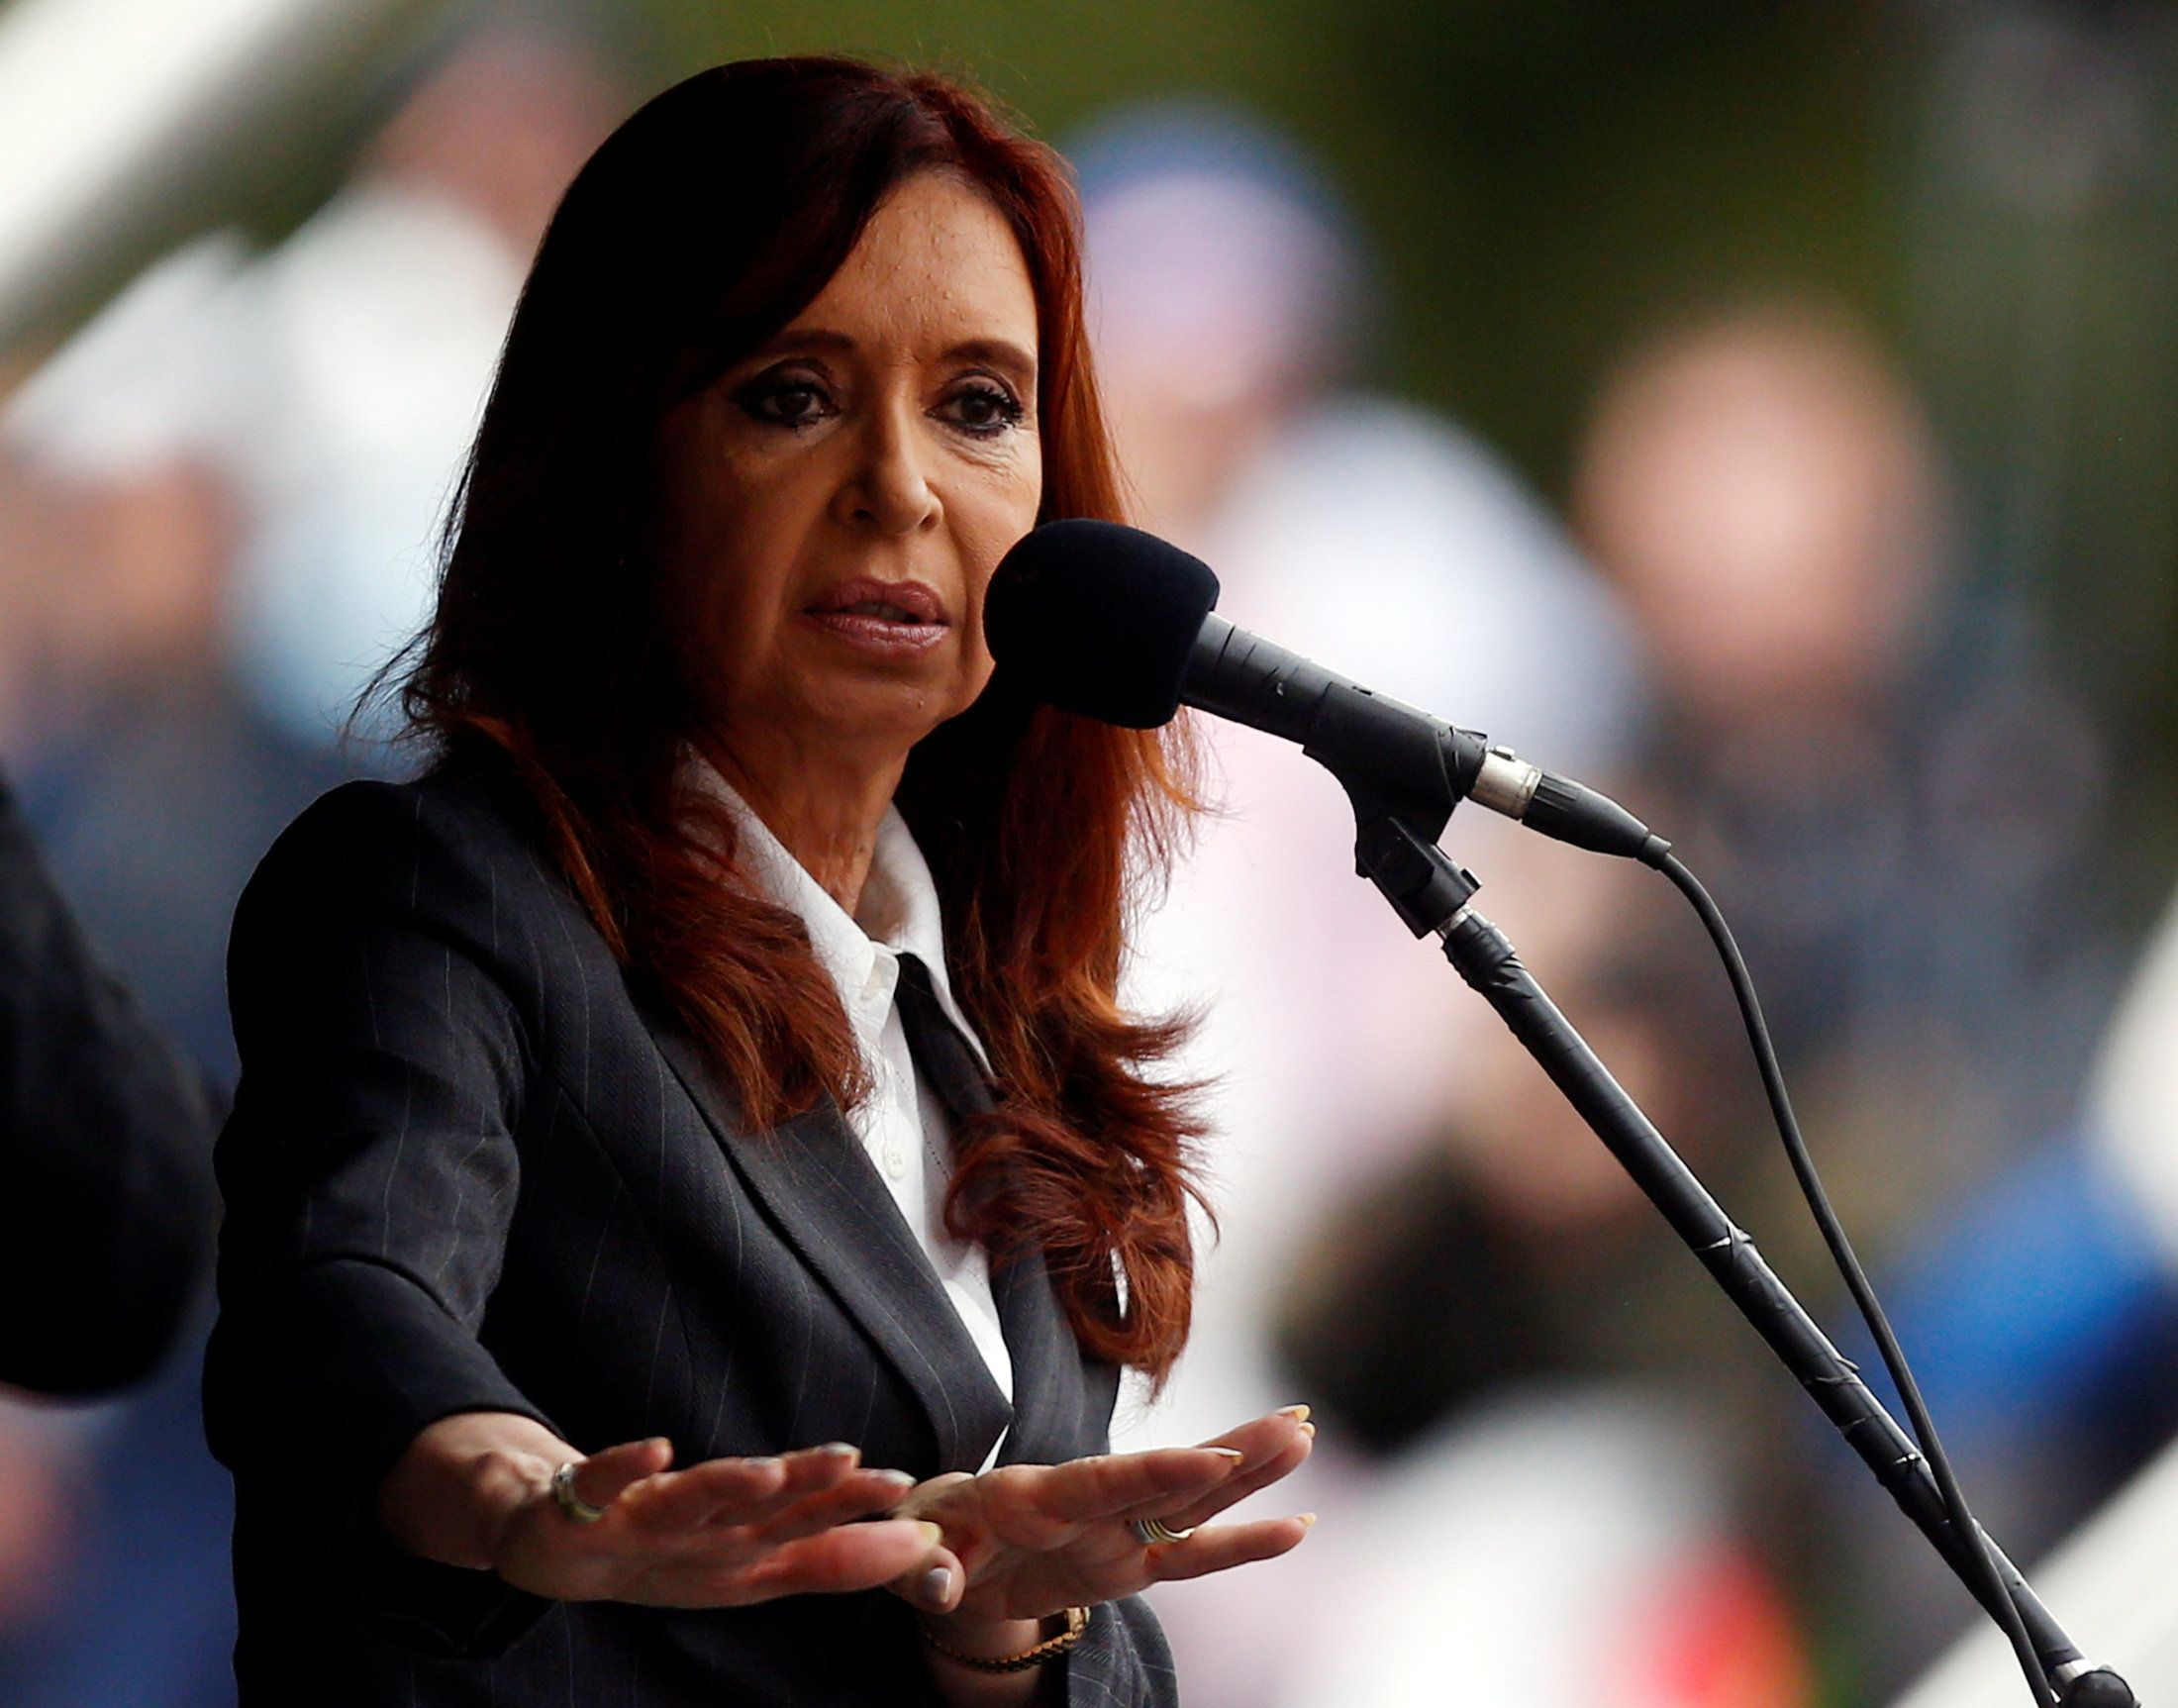 Former Argentine President Cristina Fernandez de Kirchner speaks during a rally outside a Justice building in Buenos Aires, A